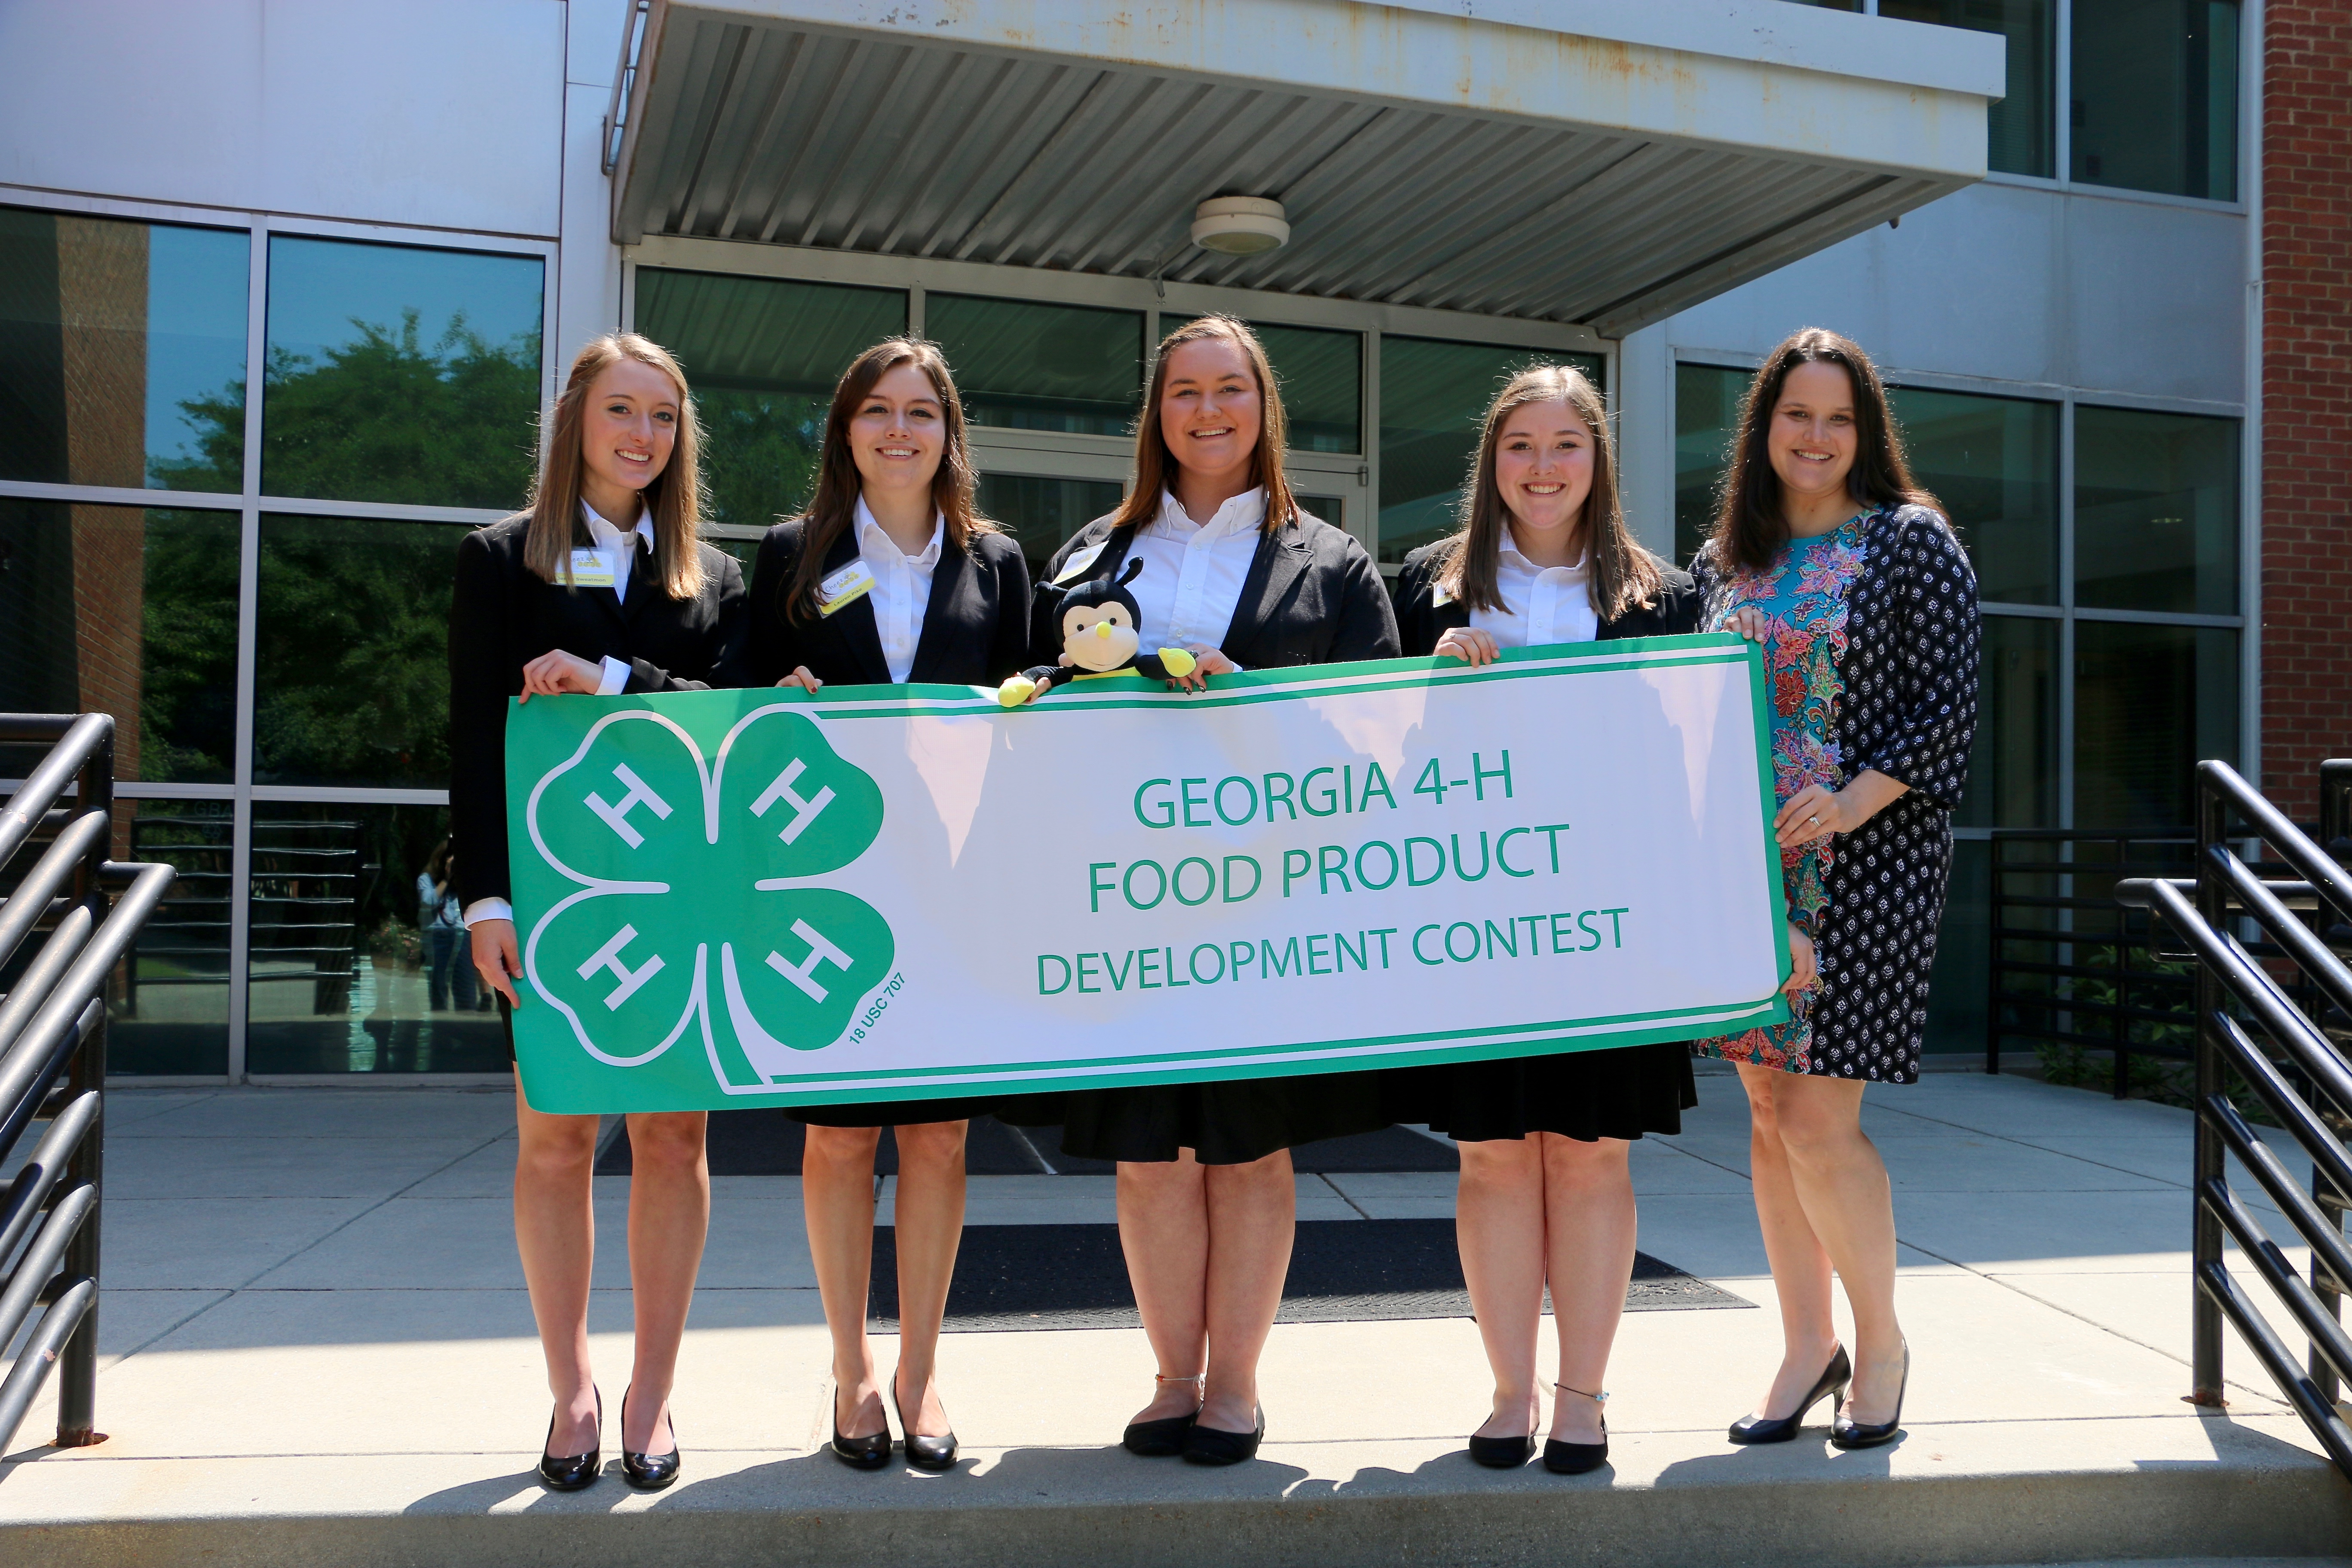 Walker County 4-H members (from left) Jenna Sweatmon, Lauren Pike, Tori Lawrence, Rylie Chamlee and 4-H agent and team coach Casey Hobbs celebrate after pitching their Cheez Beez snack cracker concept at the 2018 Georgia 4-H Food Product Development Contest.